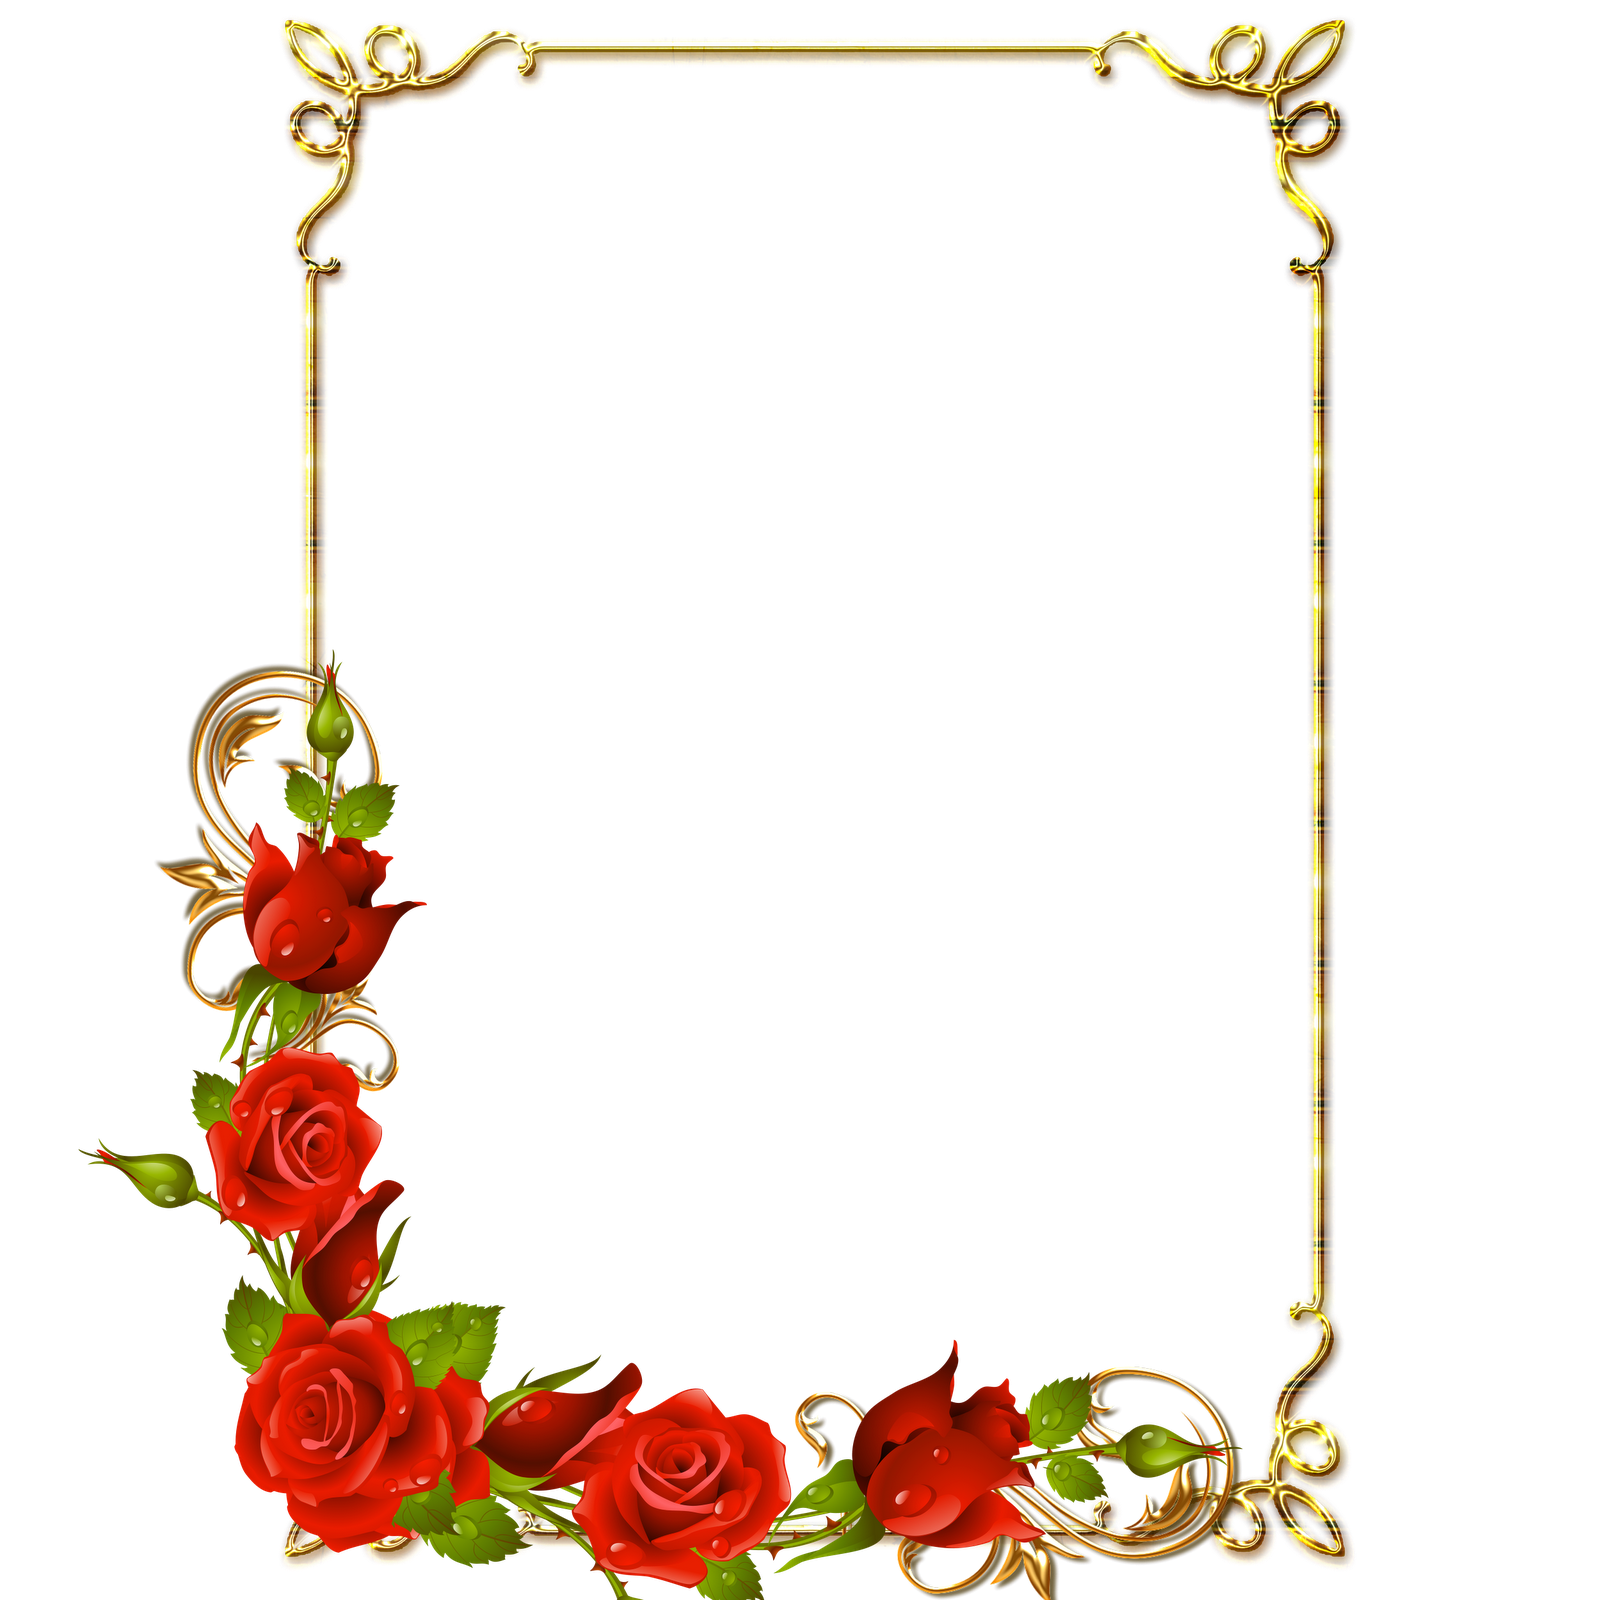 Photo free icons and. Rose frame png